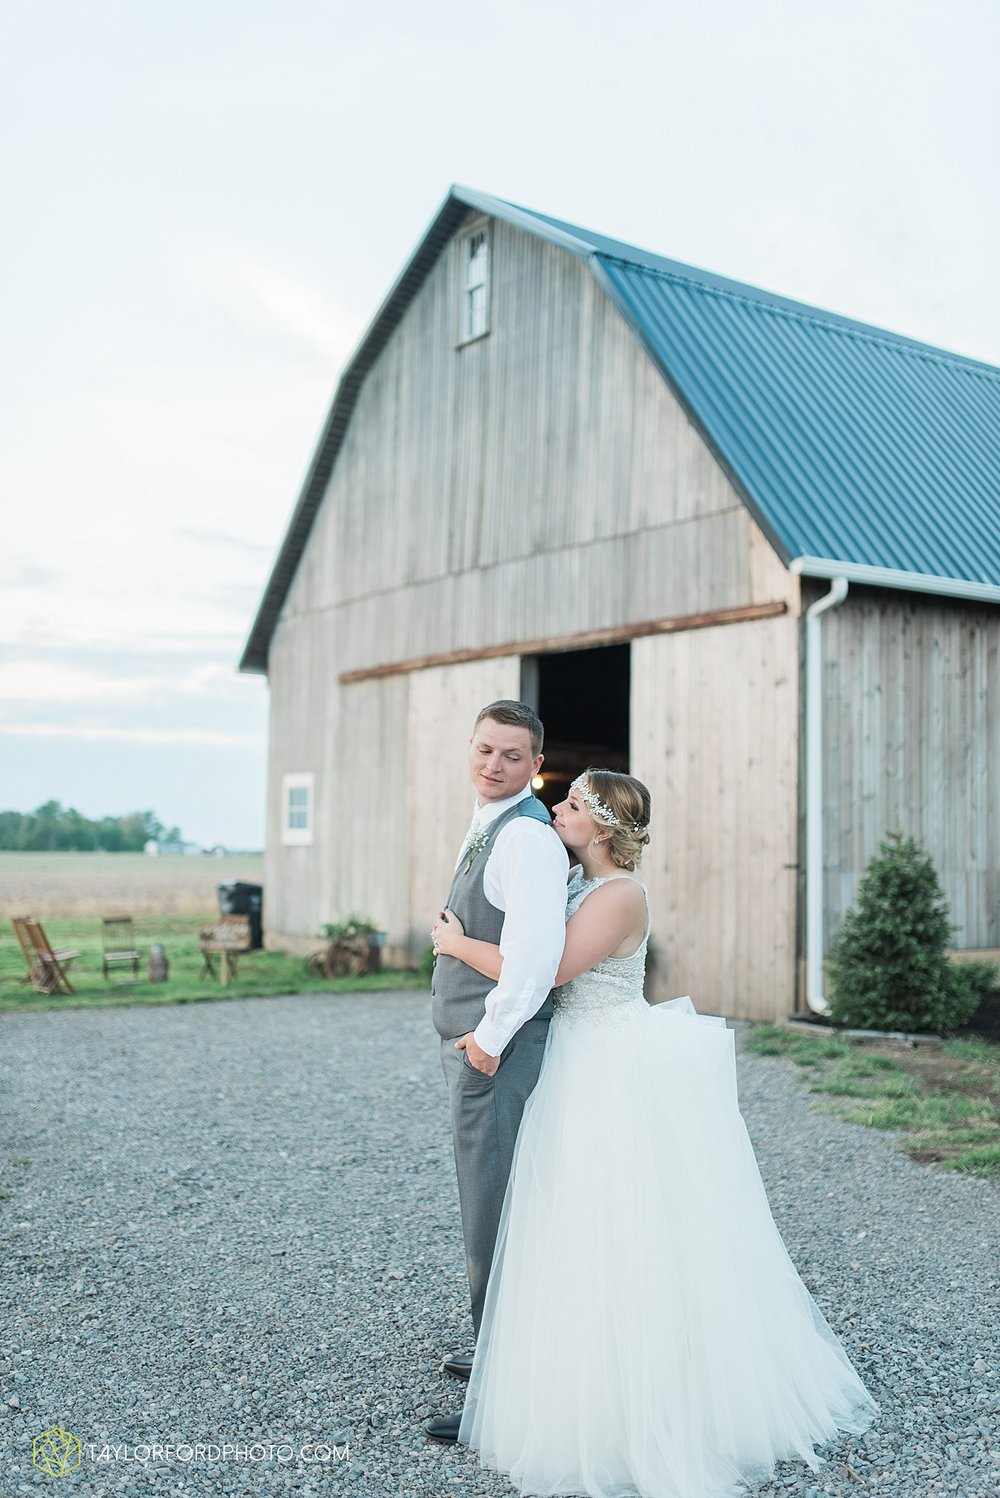 columbus-grove-black-bird-farm-wedding-photographer-taylor-ford-photography_2184.jpg